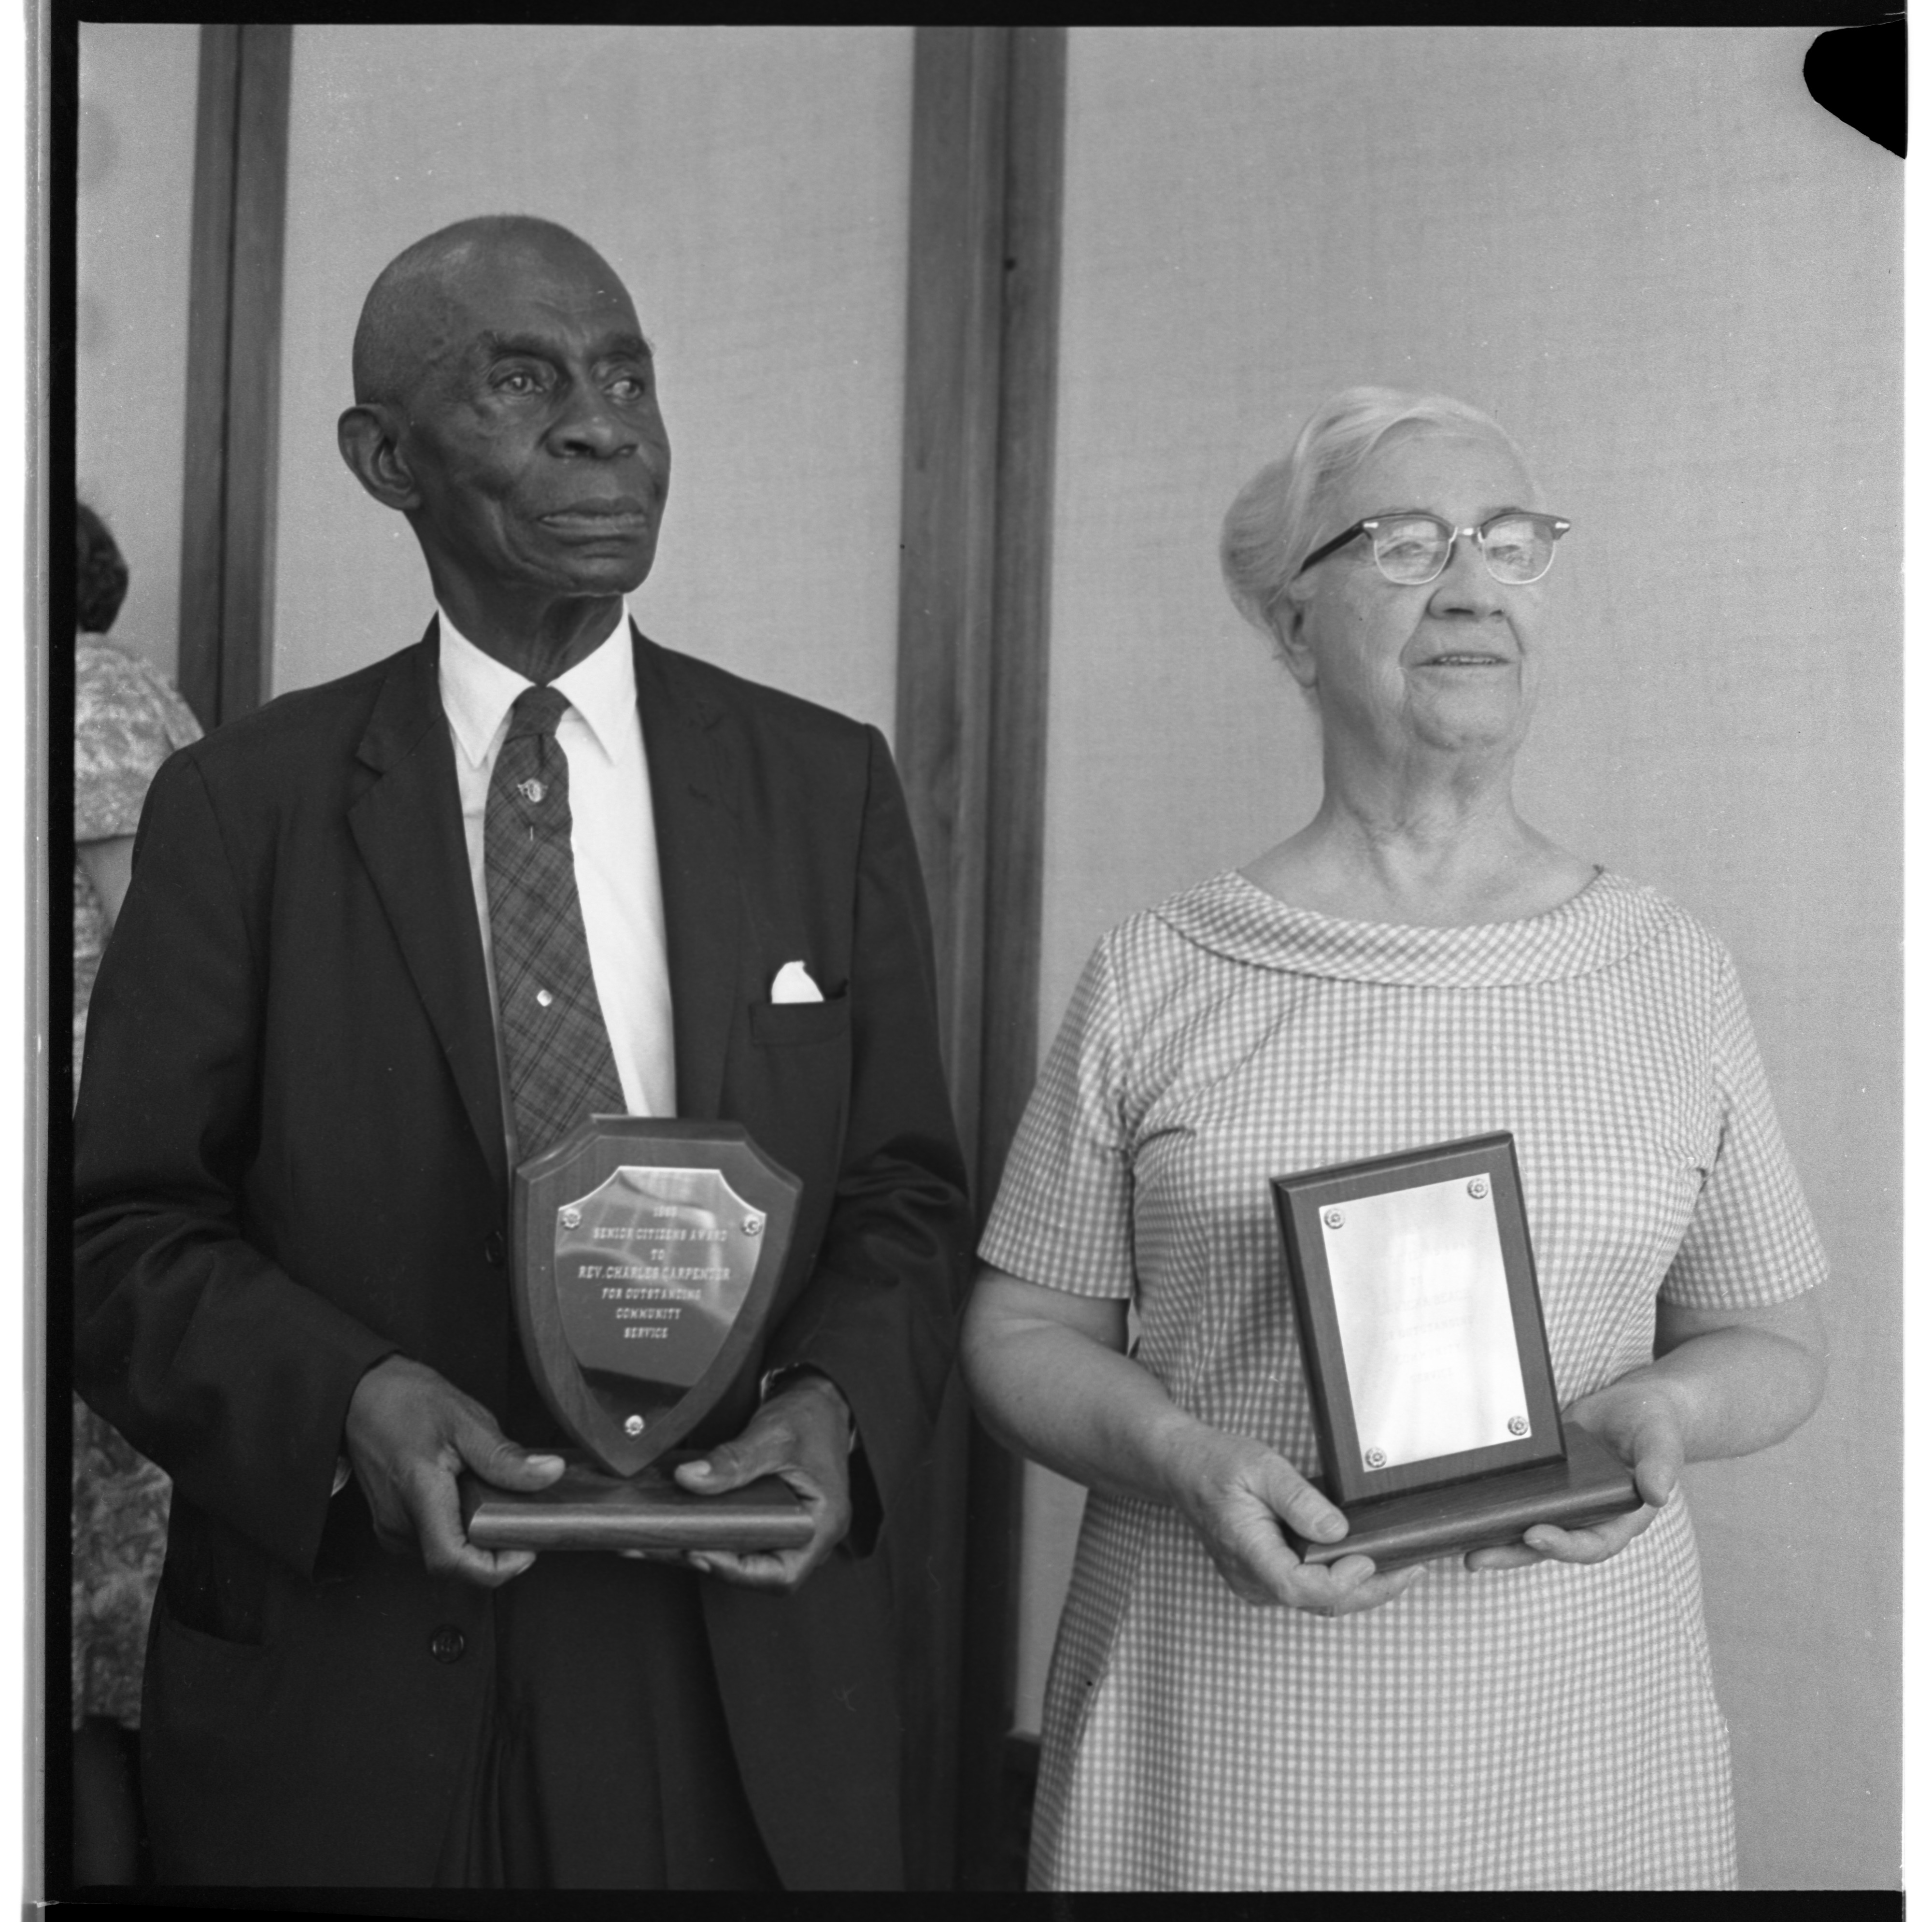 Ann Arbor's Senior Citizens of the Year, May 1969 image